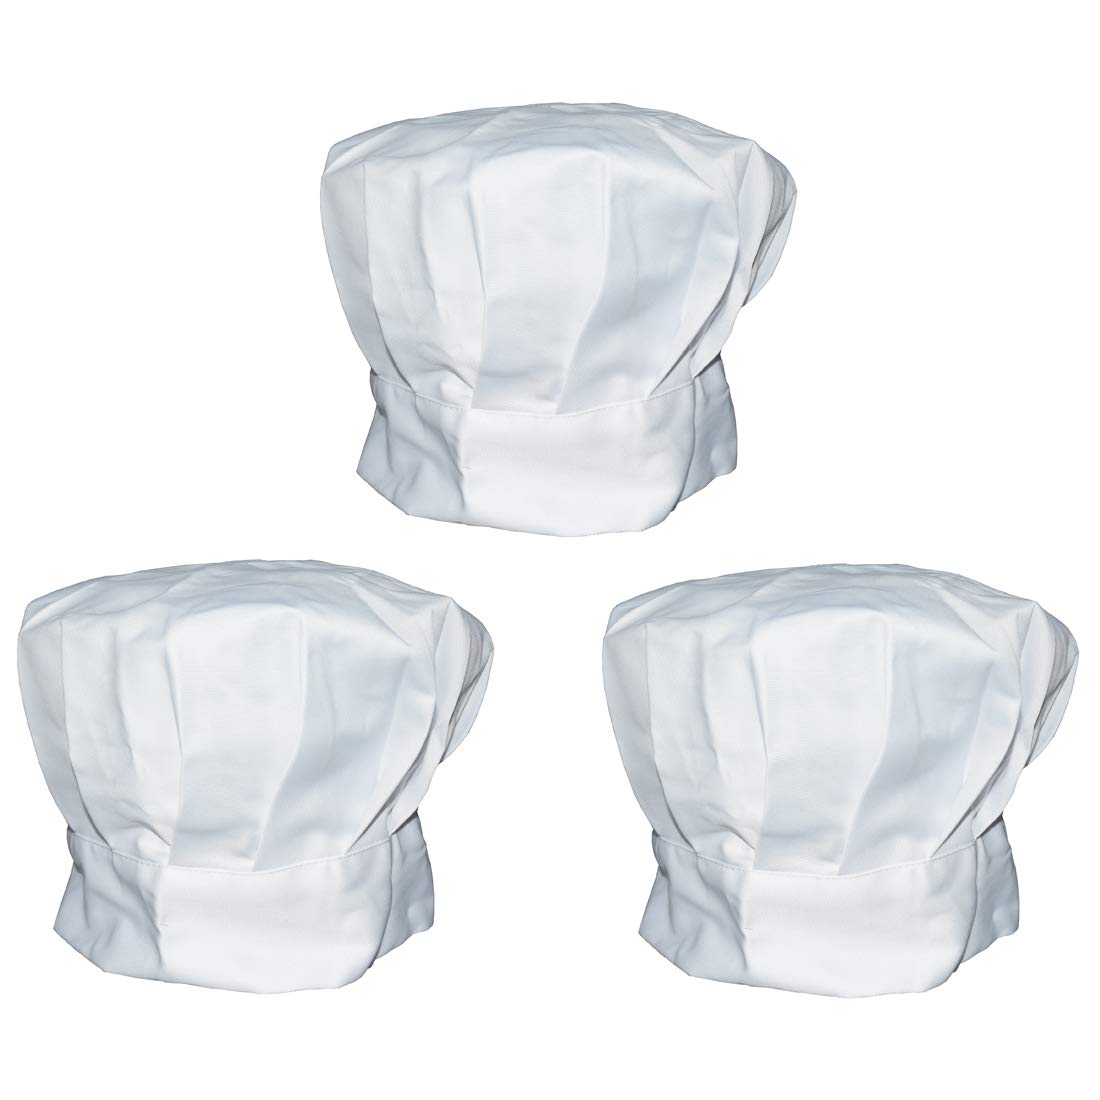 Richohome Chef Hat Set of 3 Adult Adjustable Elastic Baker Kitchen Cooking Chef Cap, White